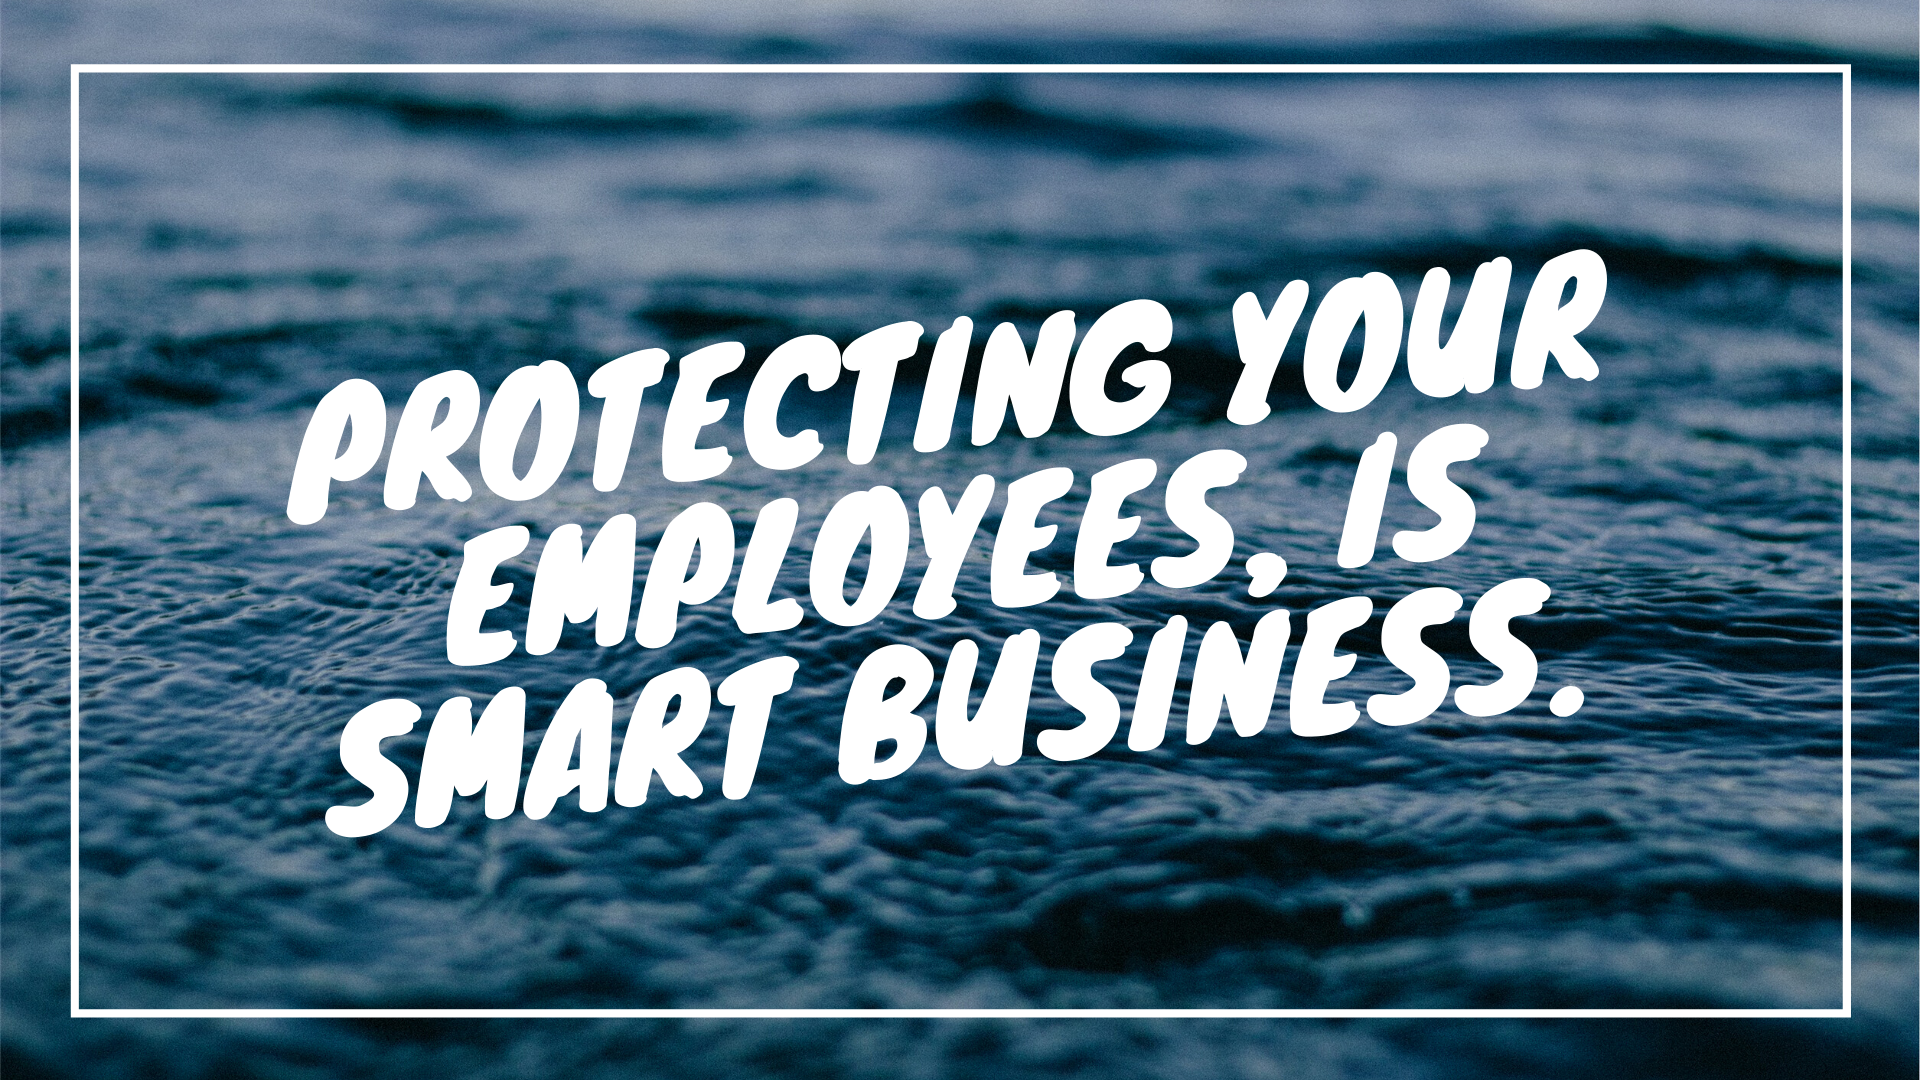 PROTECTING YOUR EMPLOYEES, IS SMART BUSINESS.